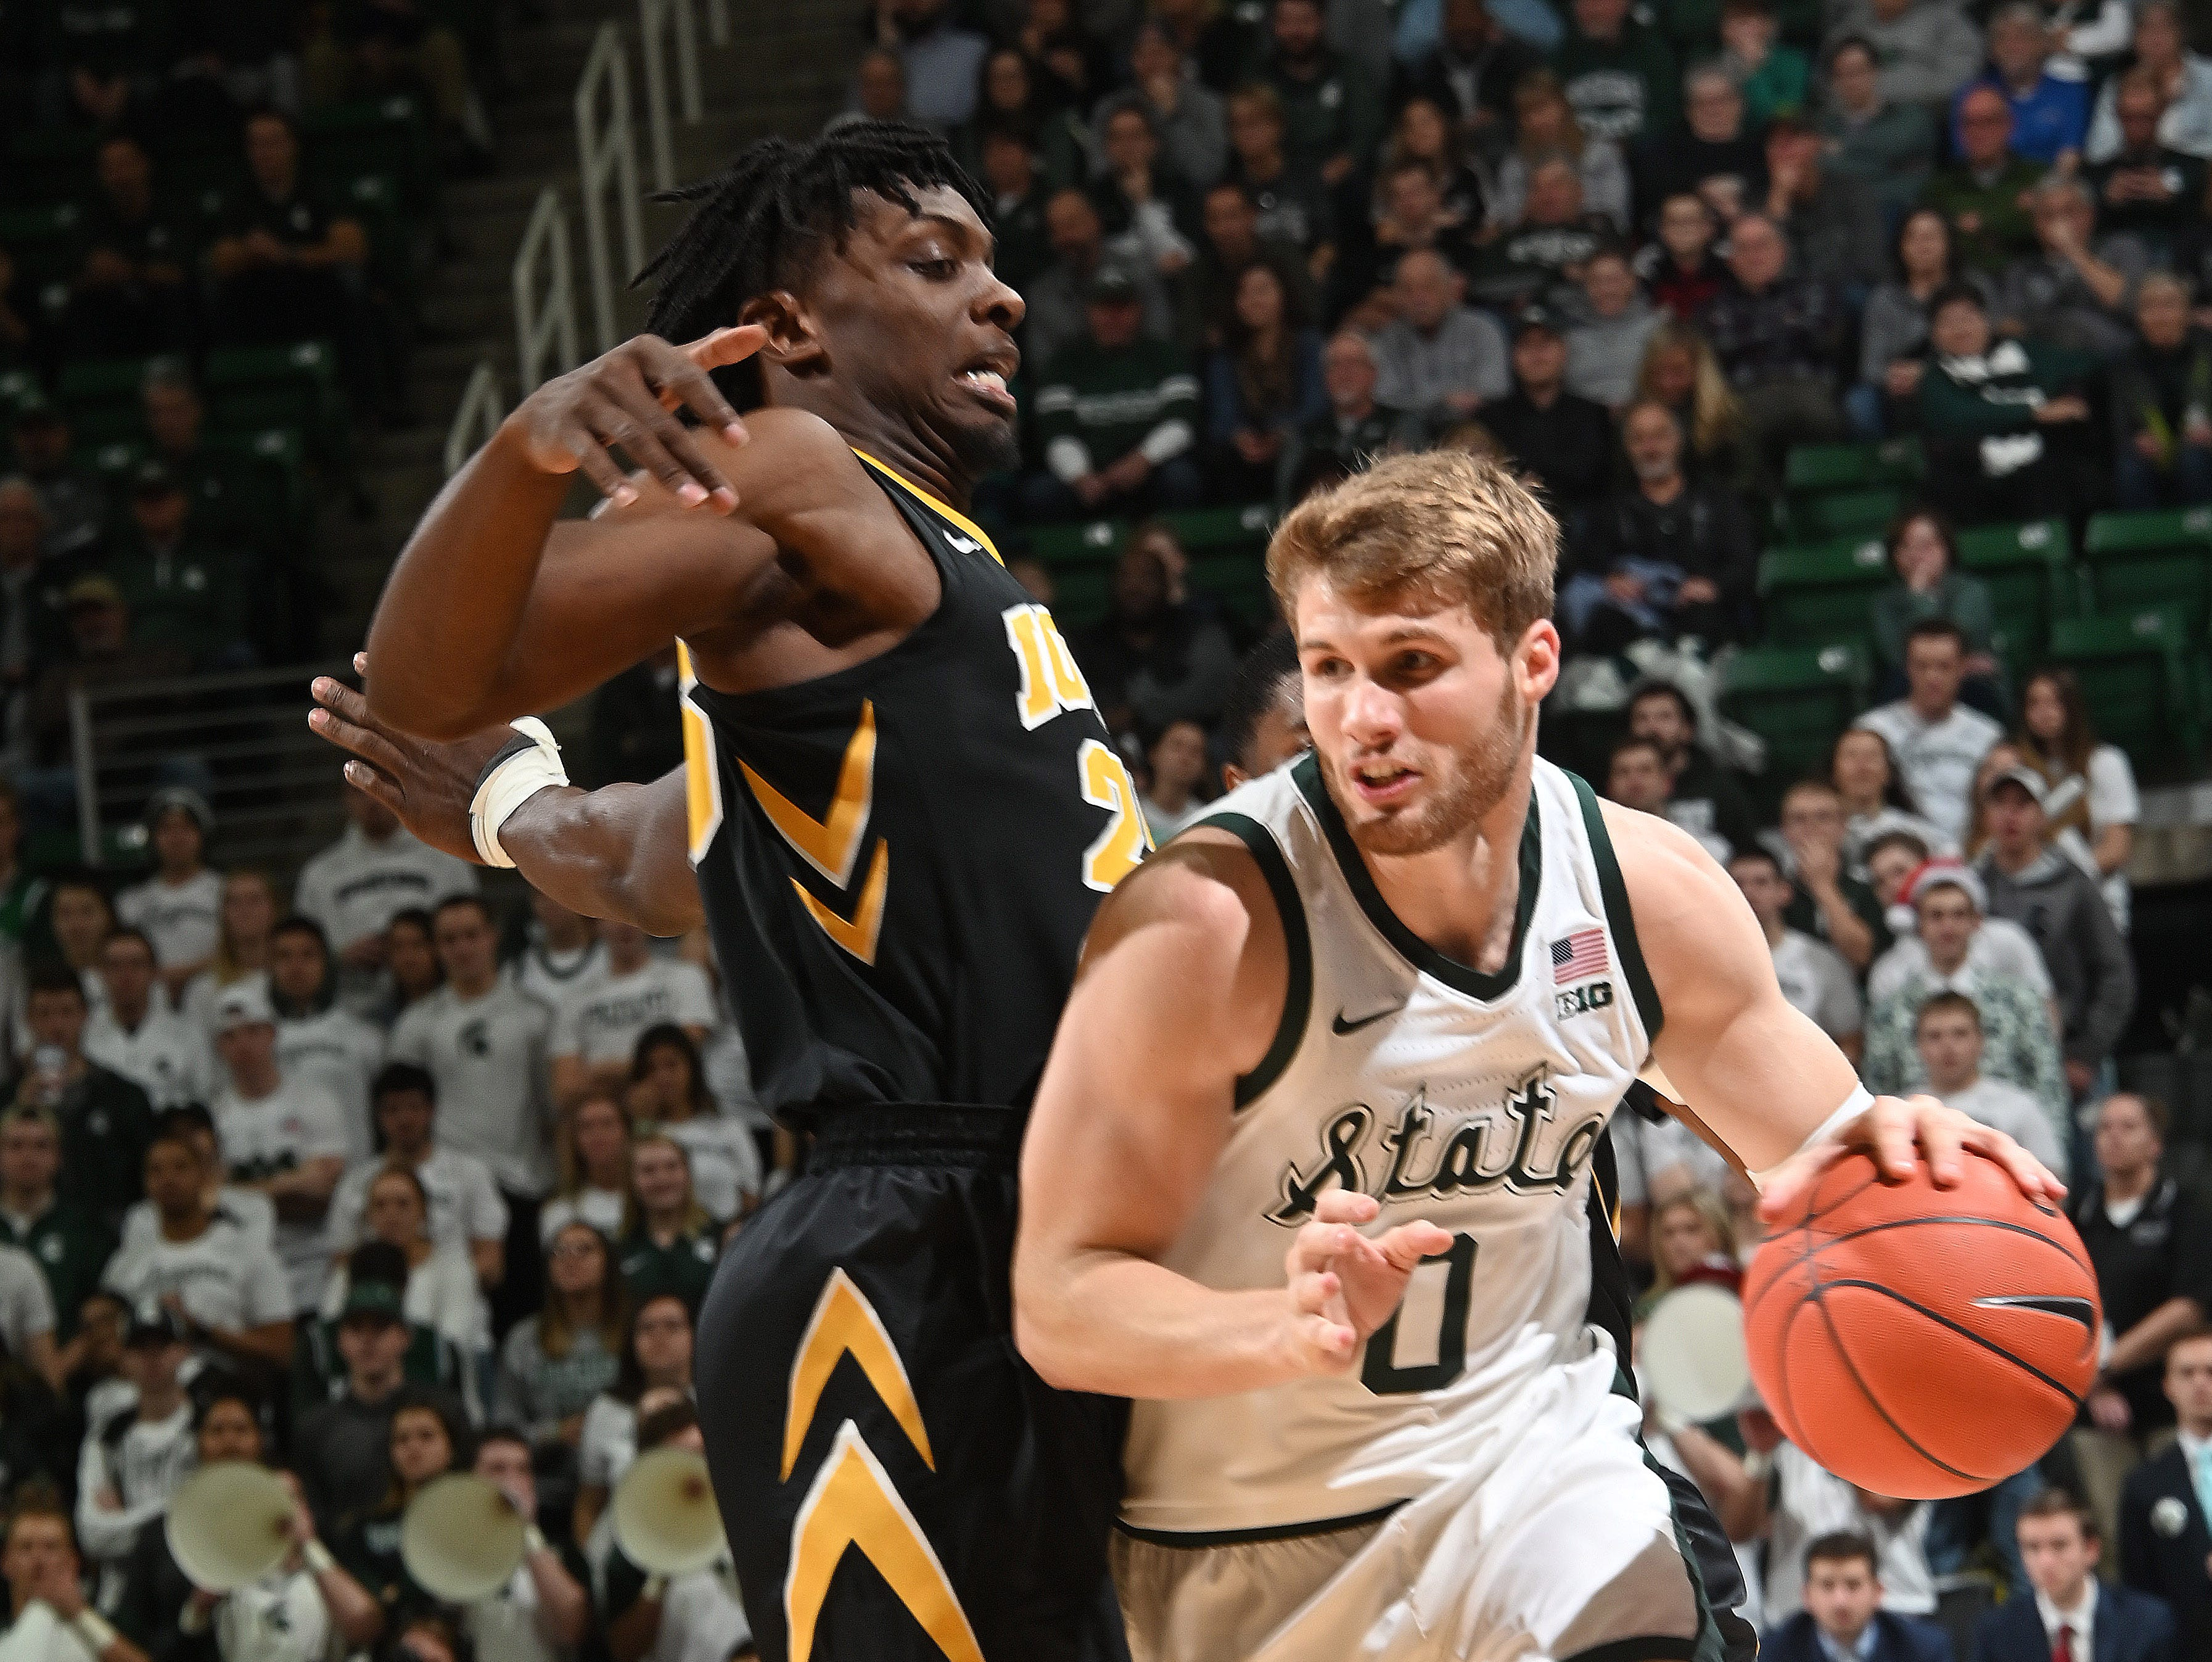 Spartan Kyle Ahrens muscles his way past Tyler Cook on his way to the basket in the first half.